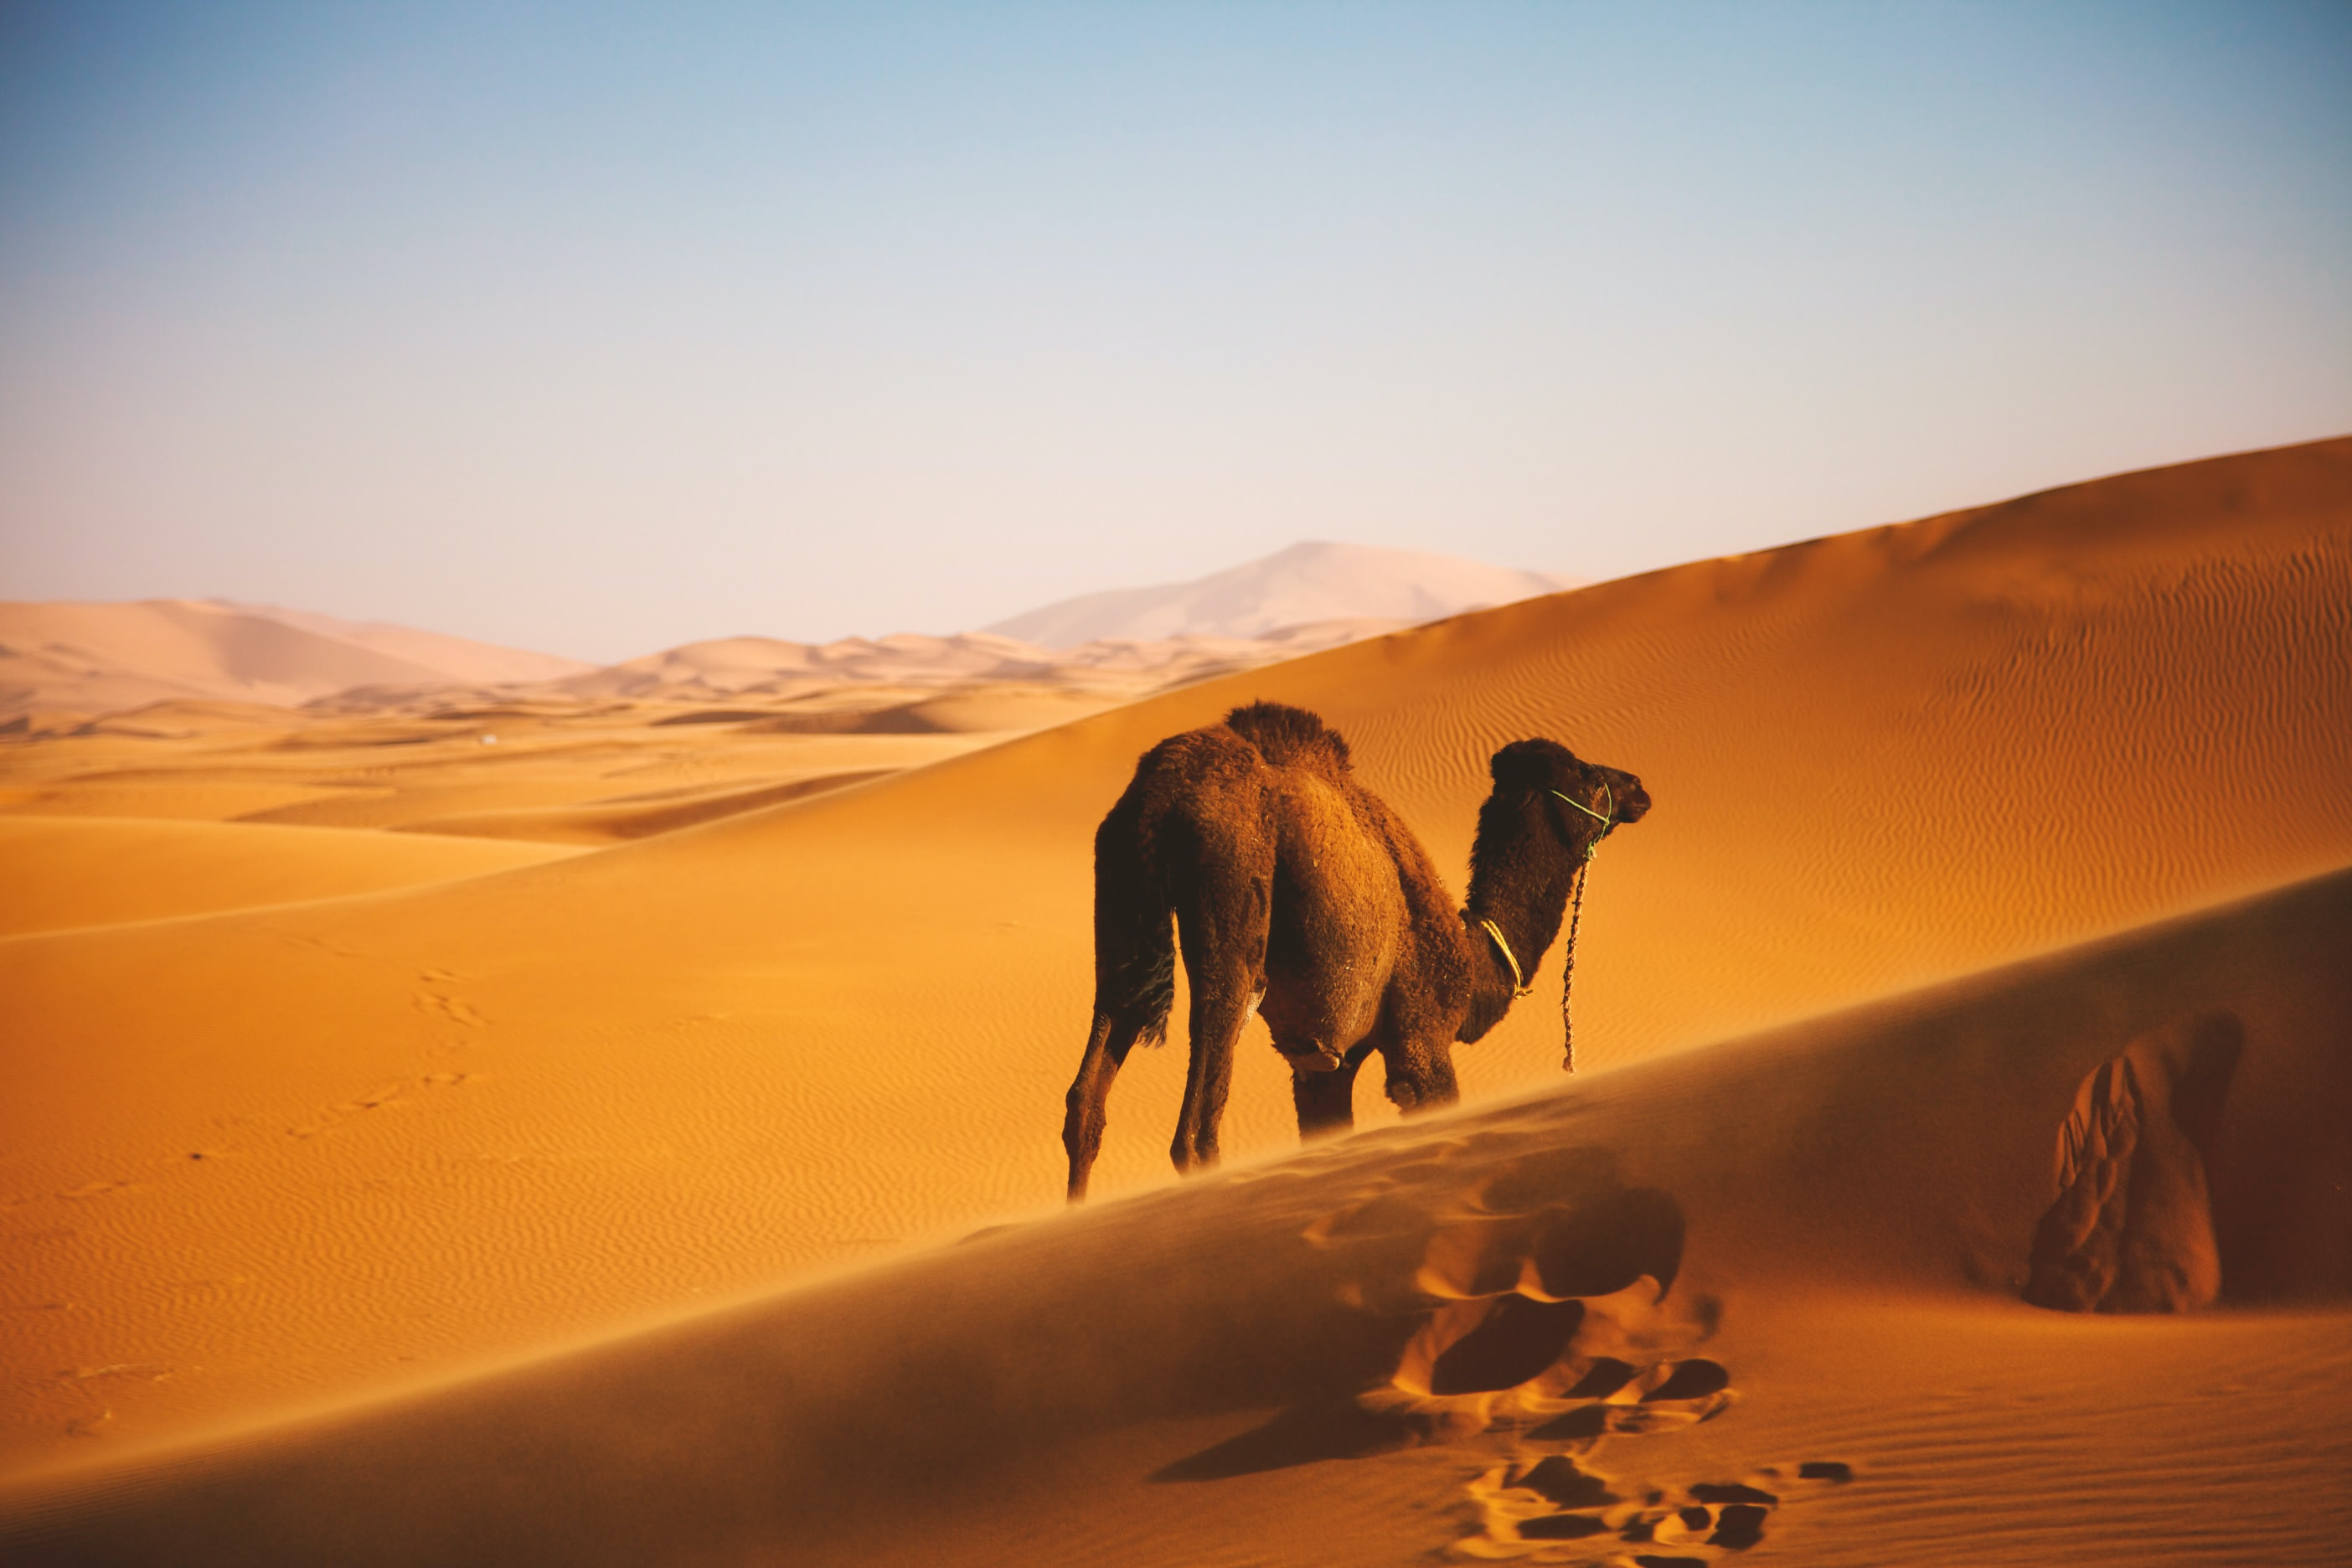 camel walking on desert